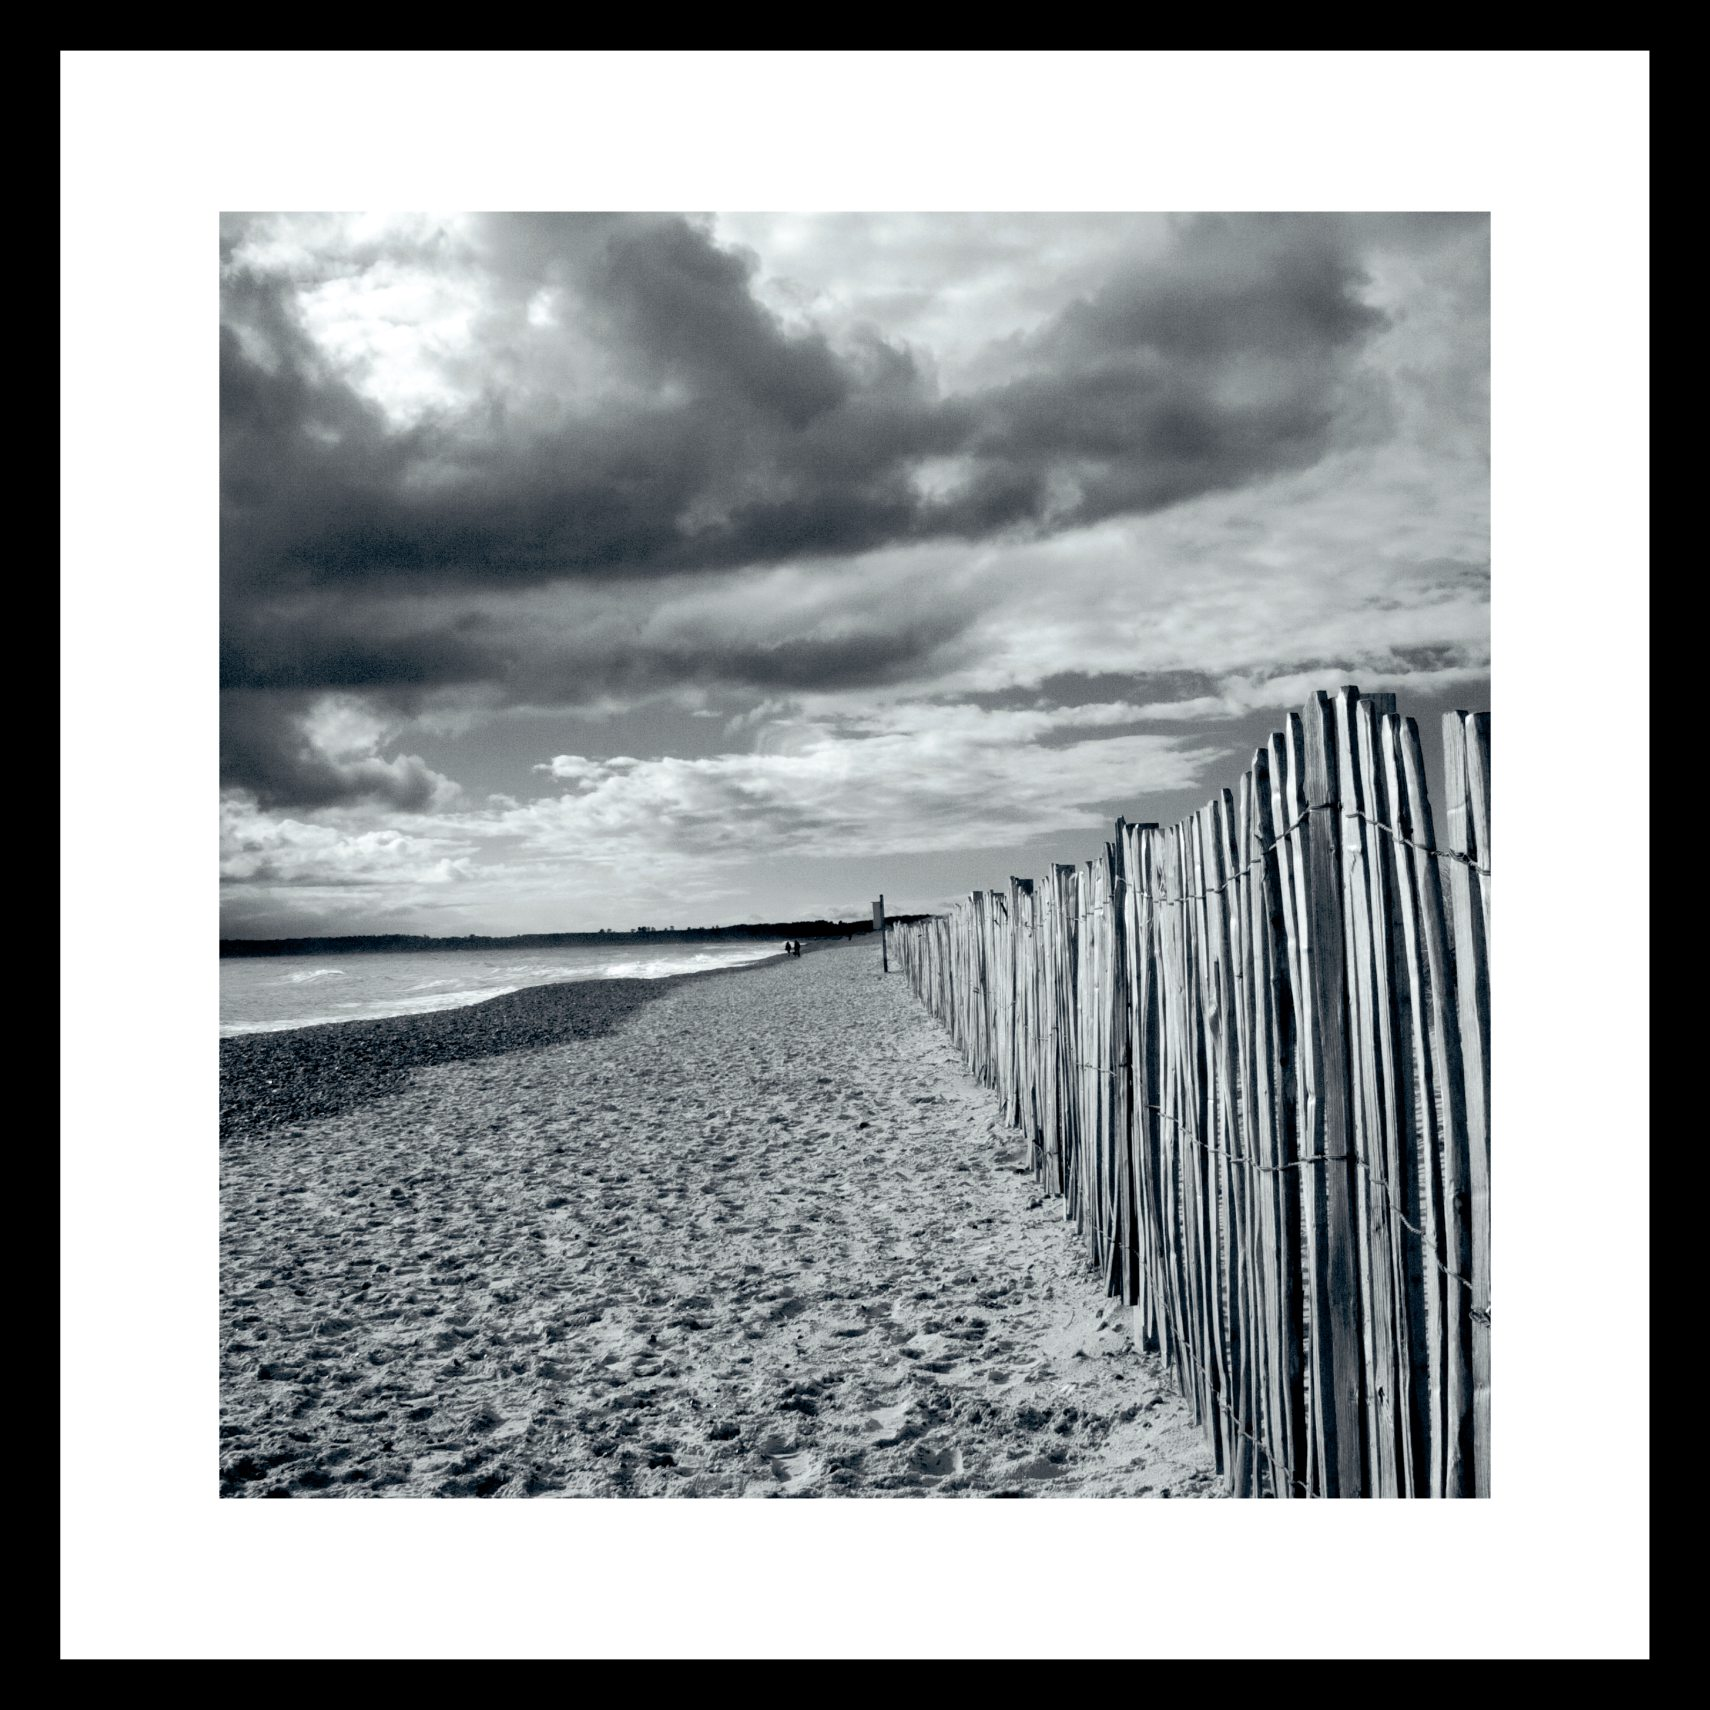 ART GALLERY Plakat 50 x 50 x 1,5 cm - Beach fence - B/W og ramme i 15 mm sort fyrretræ